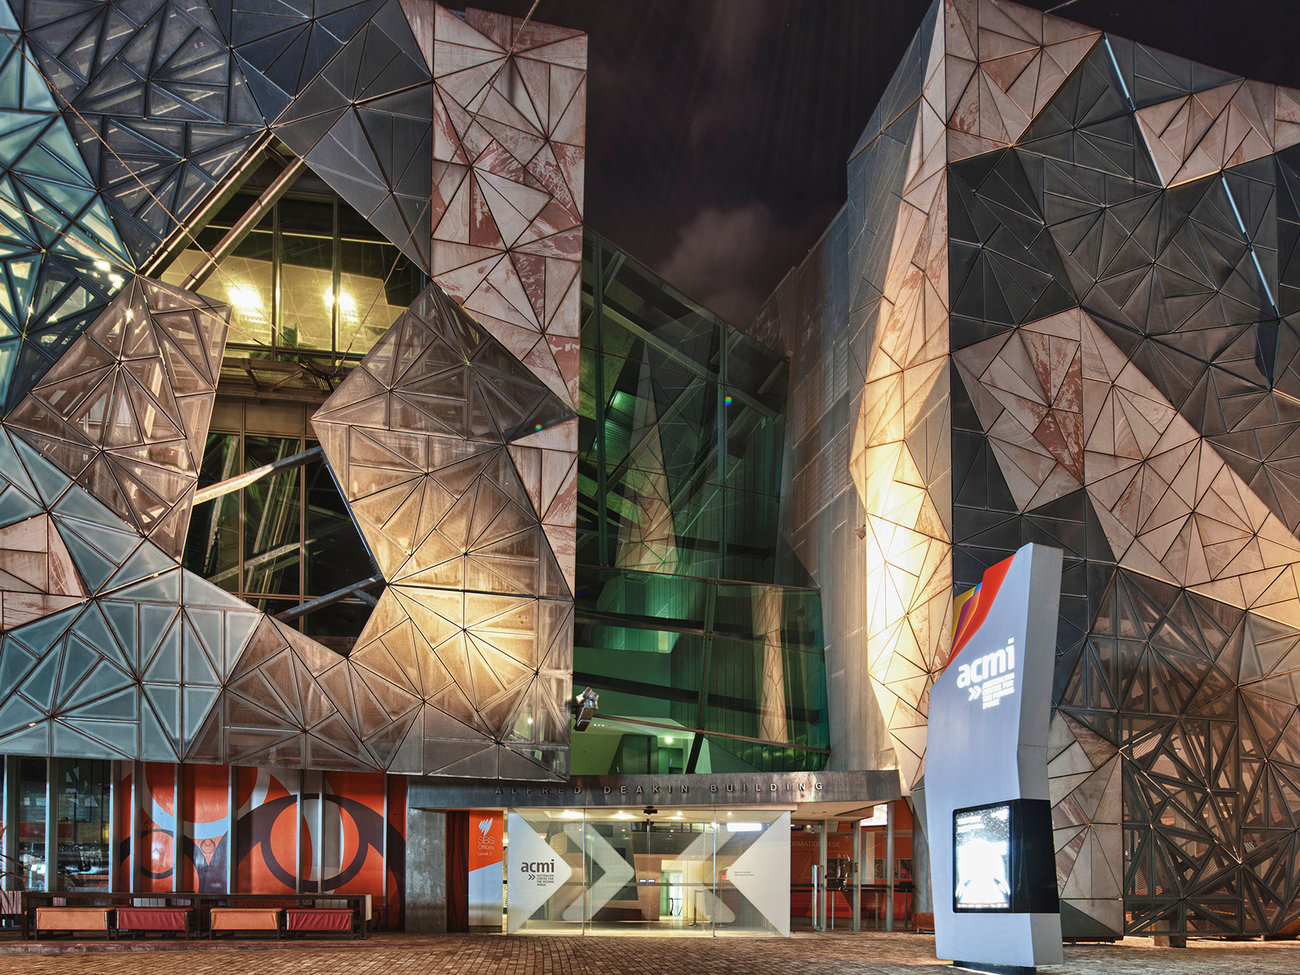 ACMI Australian Centre for the Moving Image in Melbourne